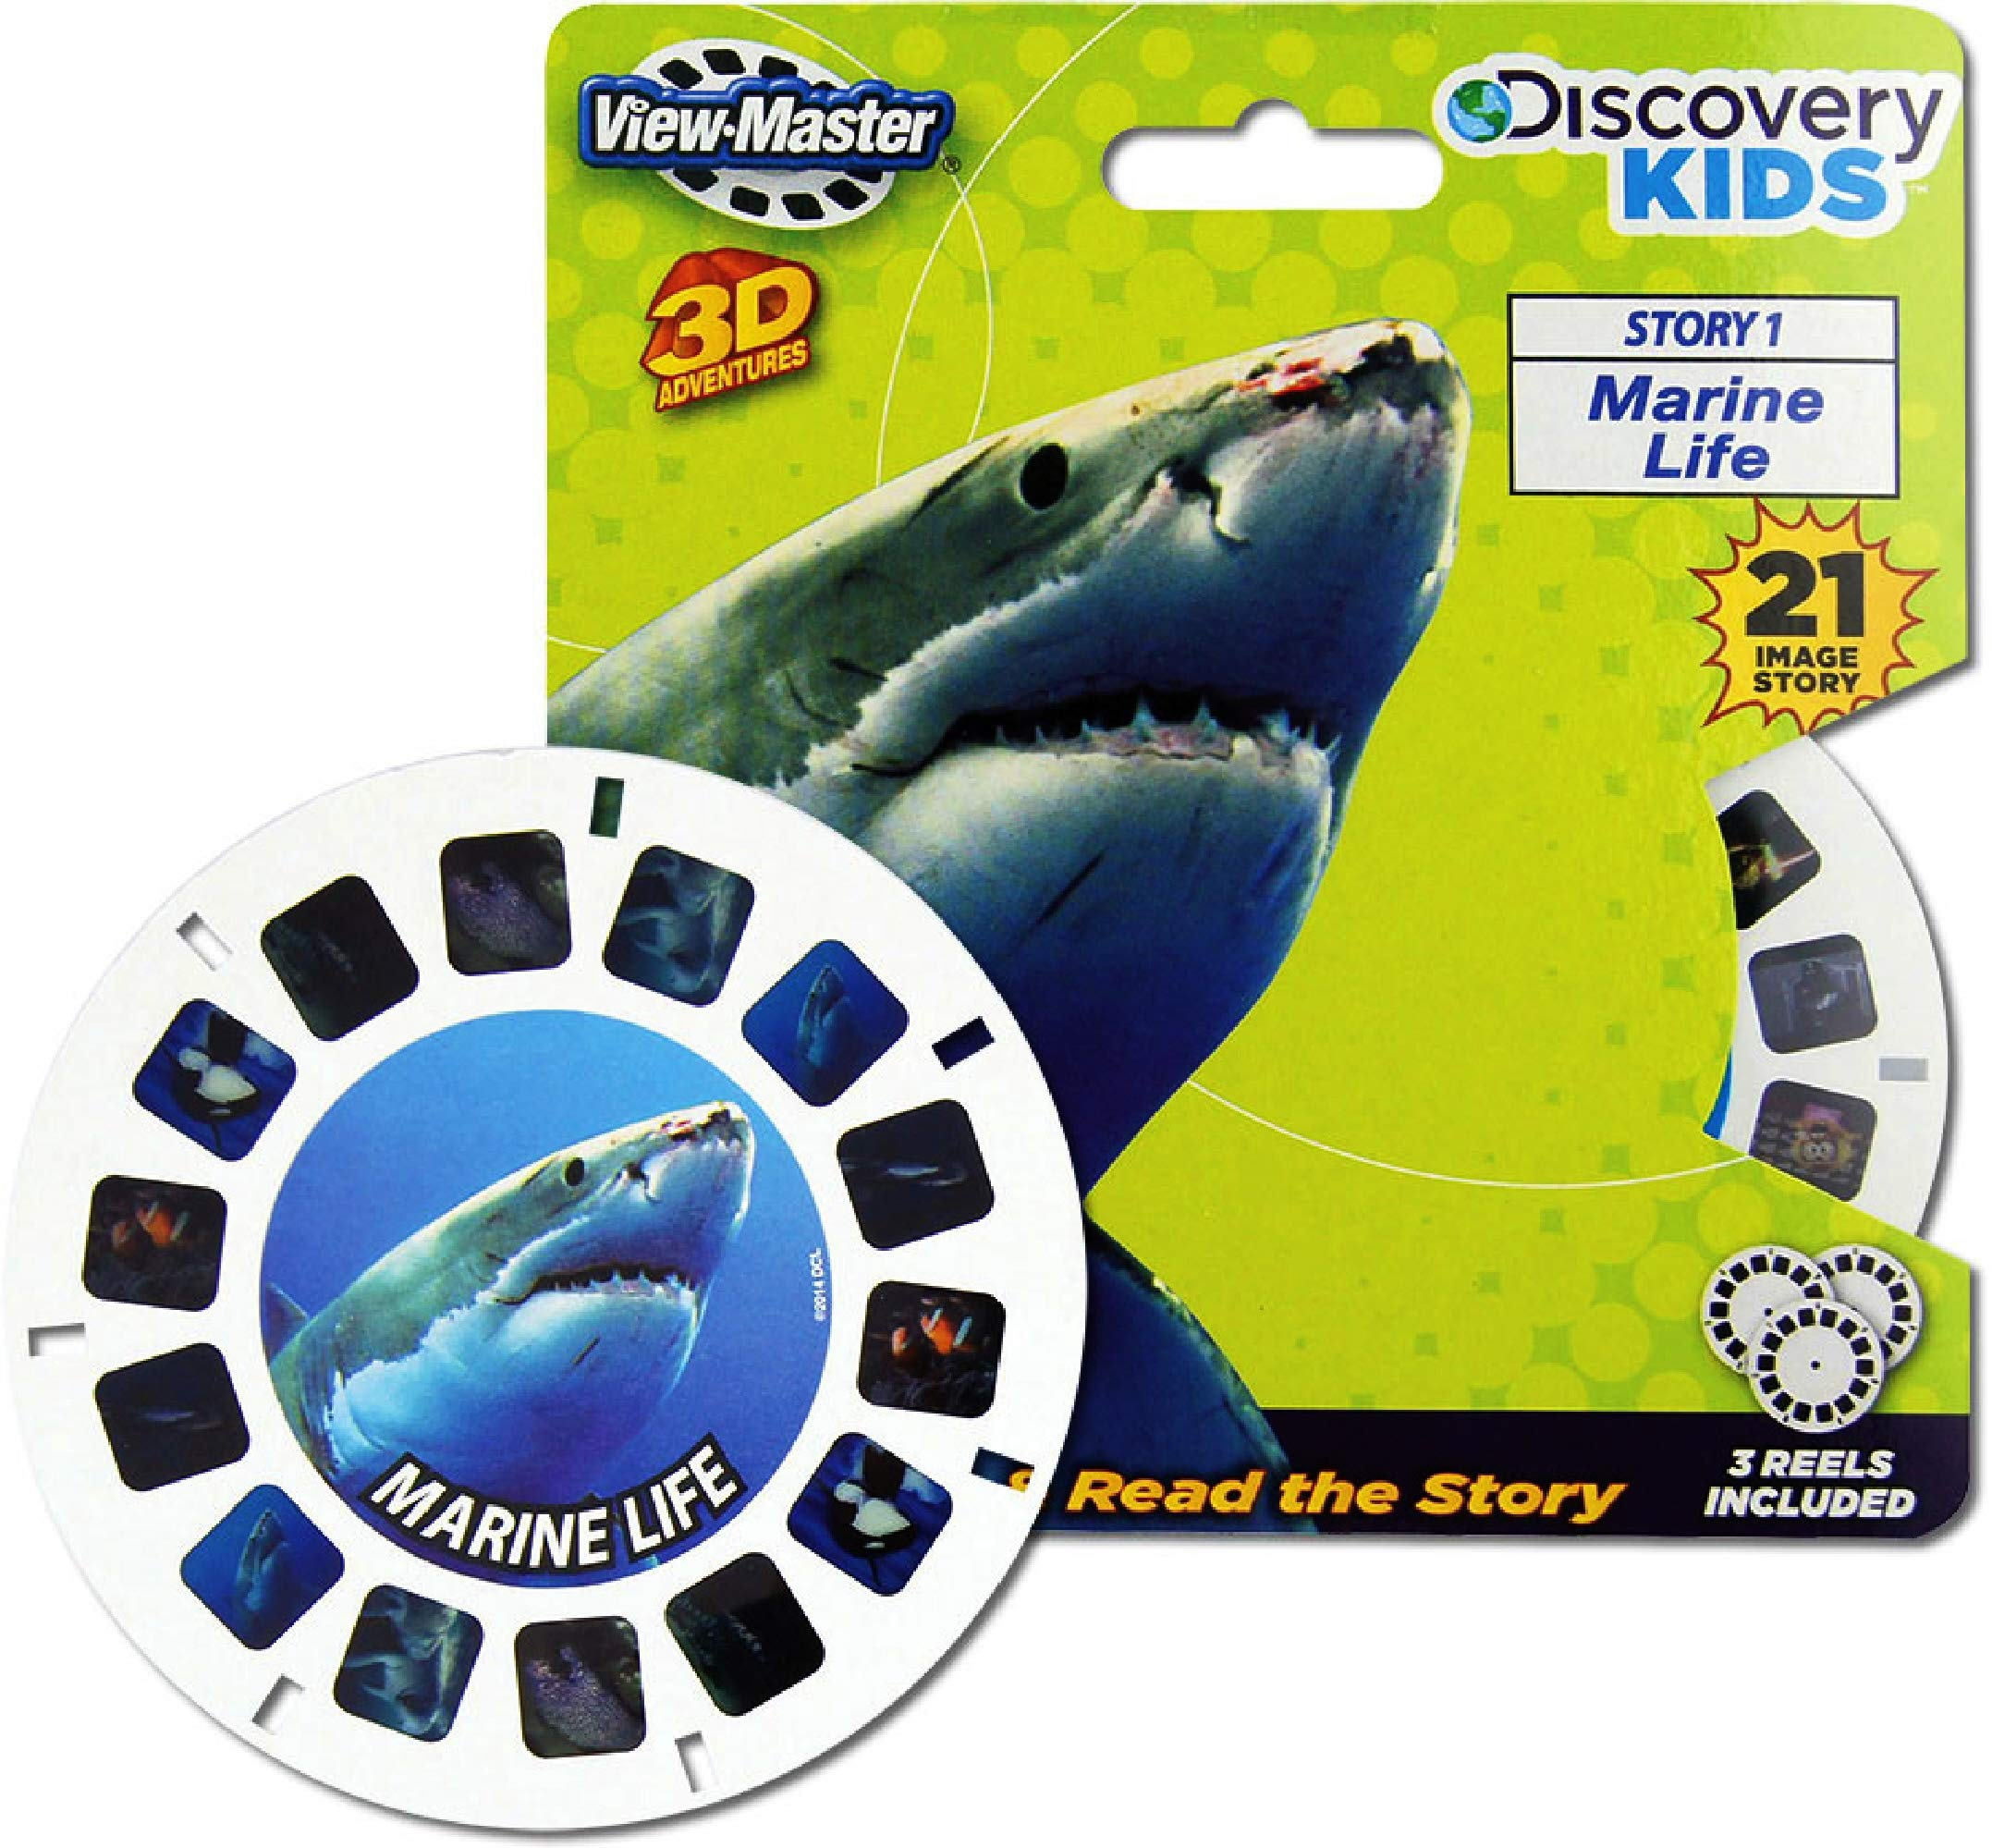 View Master Classic 3D Adventures Discovery Boxed Set & Marine Life Refill Gift Set Bundle with Bonus Matty's Toy Stop Storage Bag - 2 Pack by View Master (Image #3)